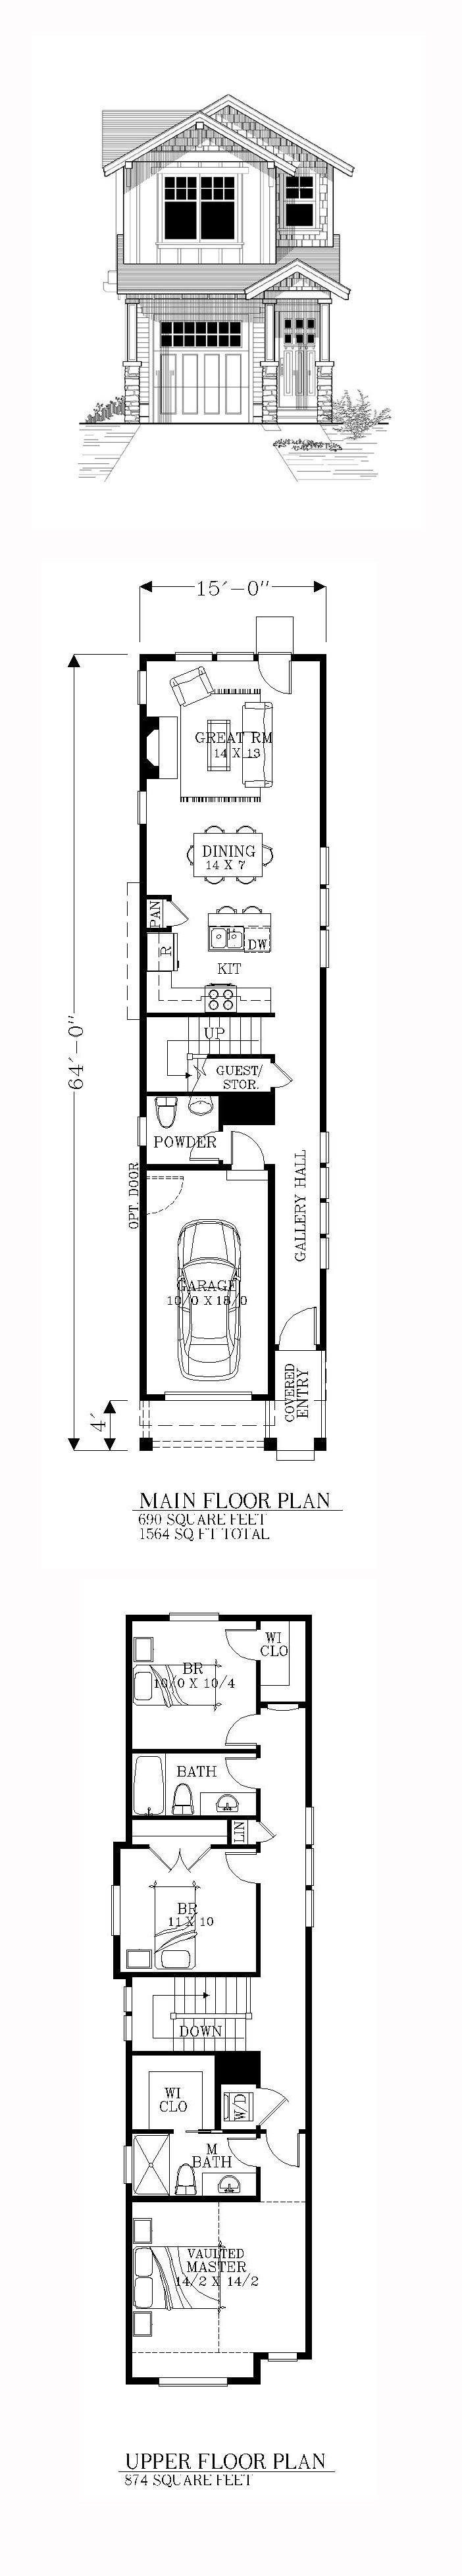 Narrow Lot House Plan 46245 Total Living Area 1564 Sq Ft 3 Bedrooms And 2 5 Bathrooms Copyright By Desig Narrow Lot House Plans House Plans Narrow House